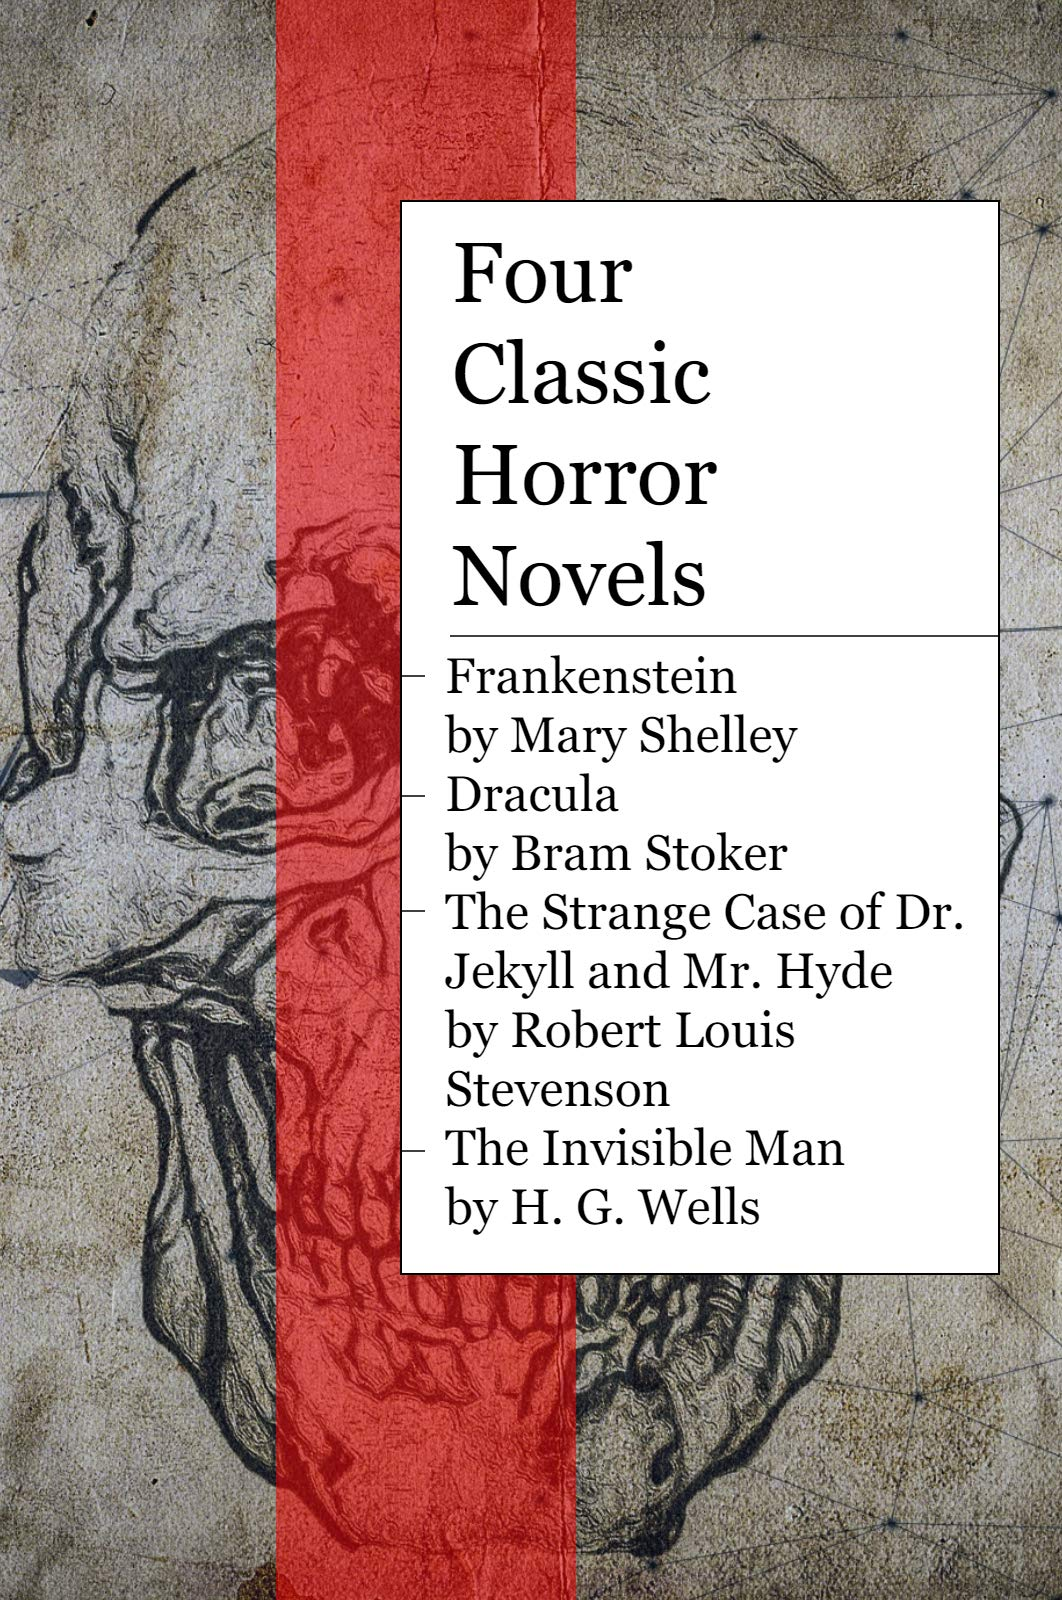 Four Classic Horror Novels: Frankenstein by Mary Shelley, Dracula by Bram Stoker, The Strange Case of Dr. Jekyll and Mr. Hyde by Robert Louis Stevenson, and The Invisible Man by H.G. Wells.